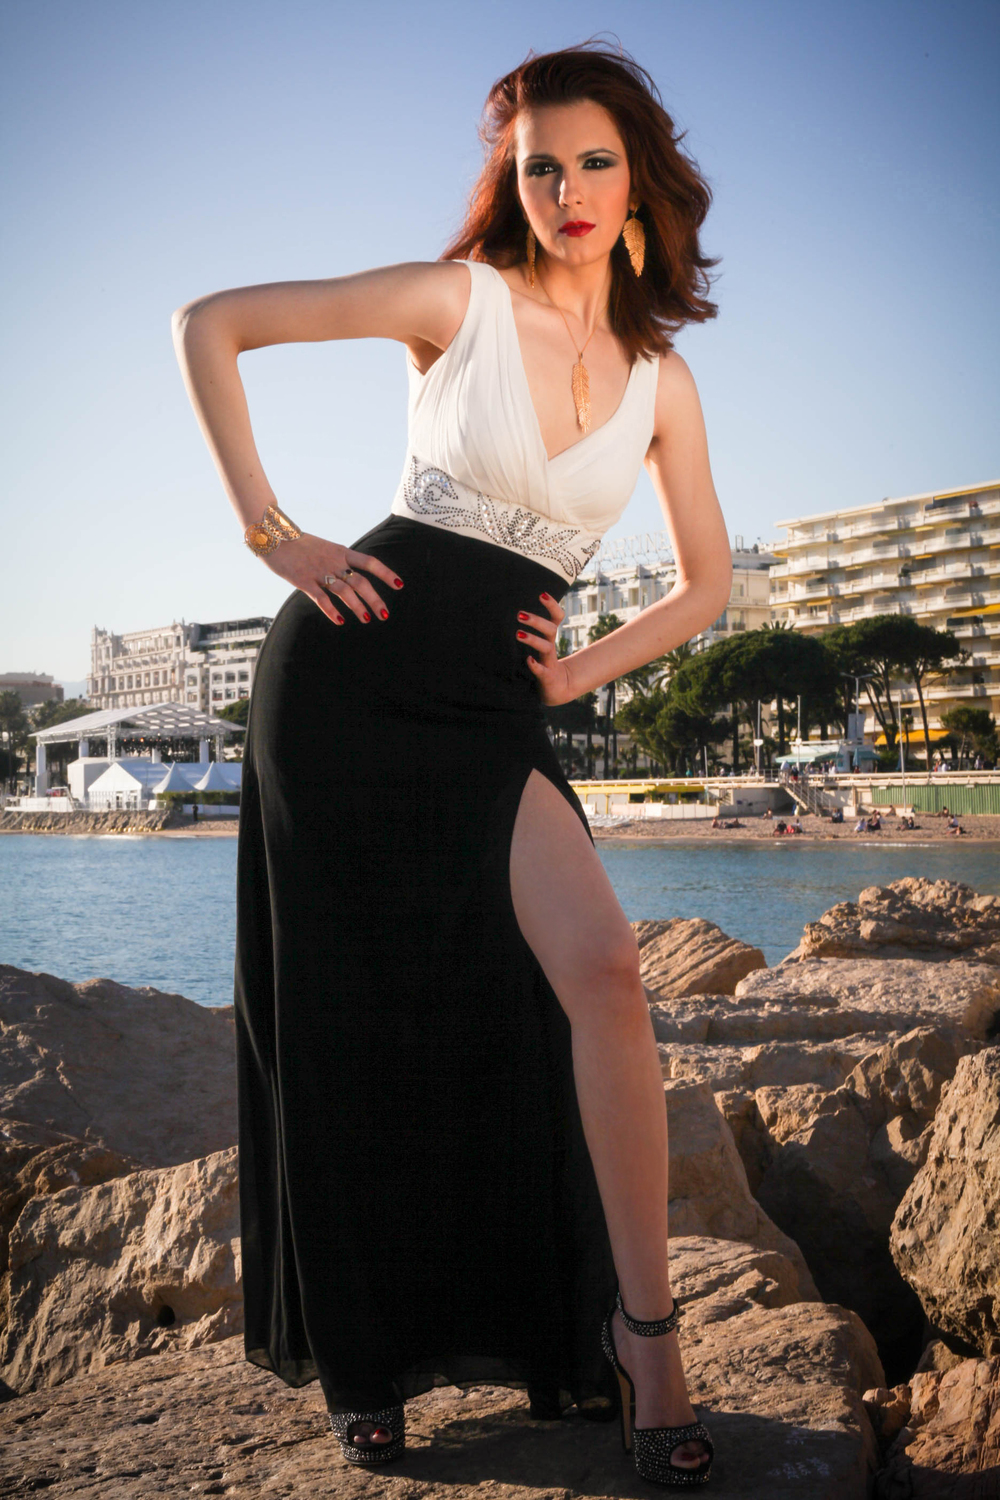 Cannes Promenade Photo Shoot... On the Rocks 1